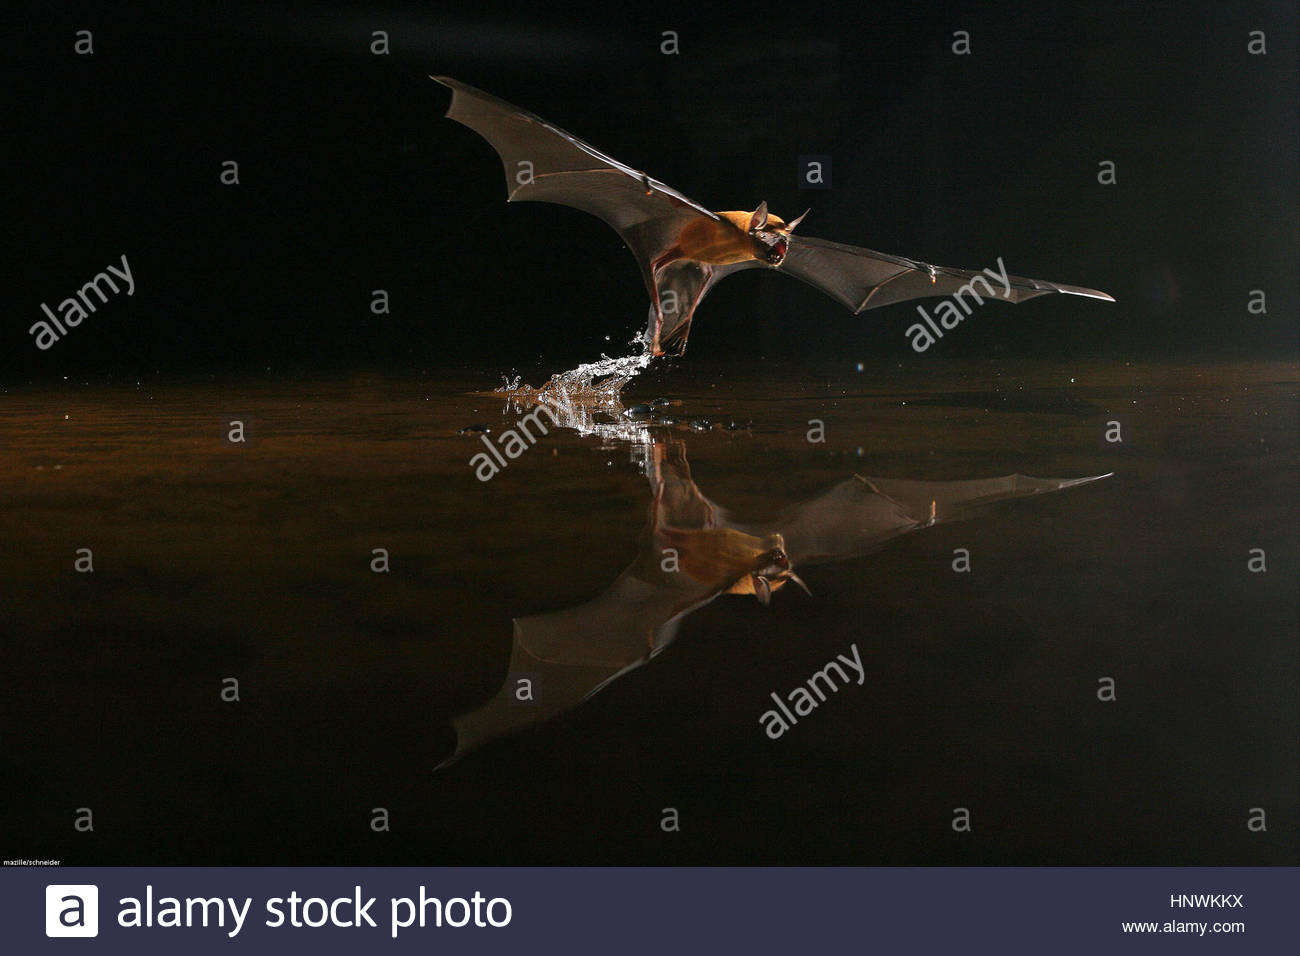 A bat flys and catches a frog in the water, French Guyana. - Stock Image